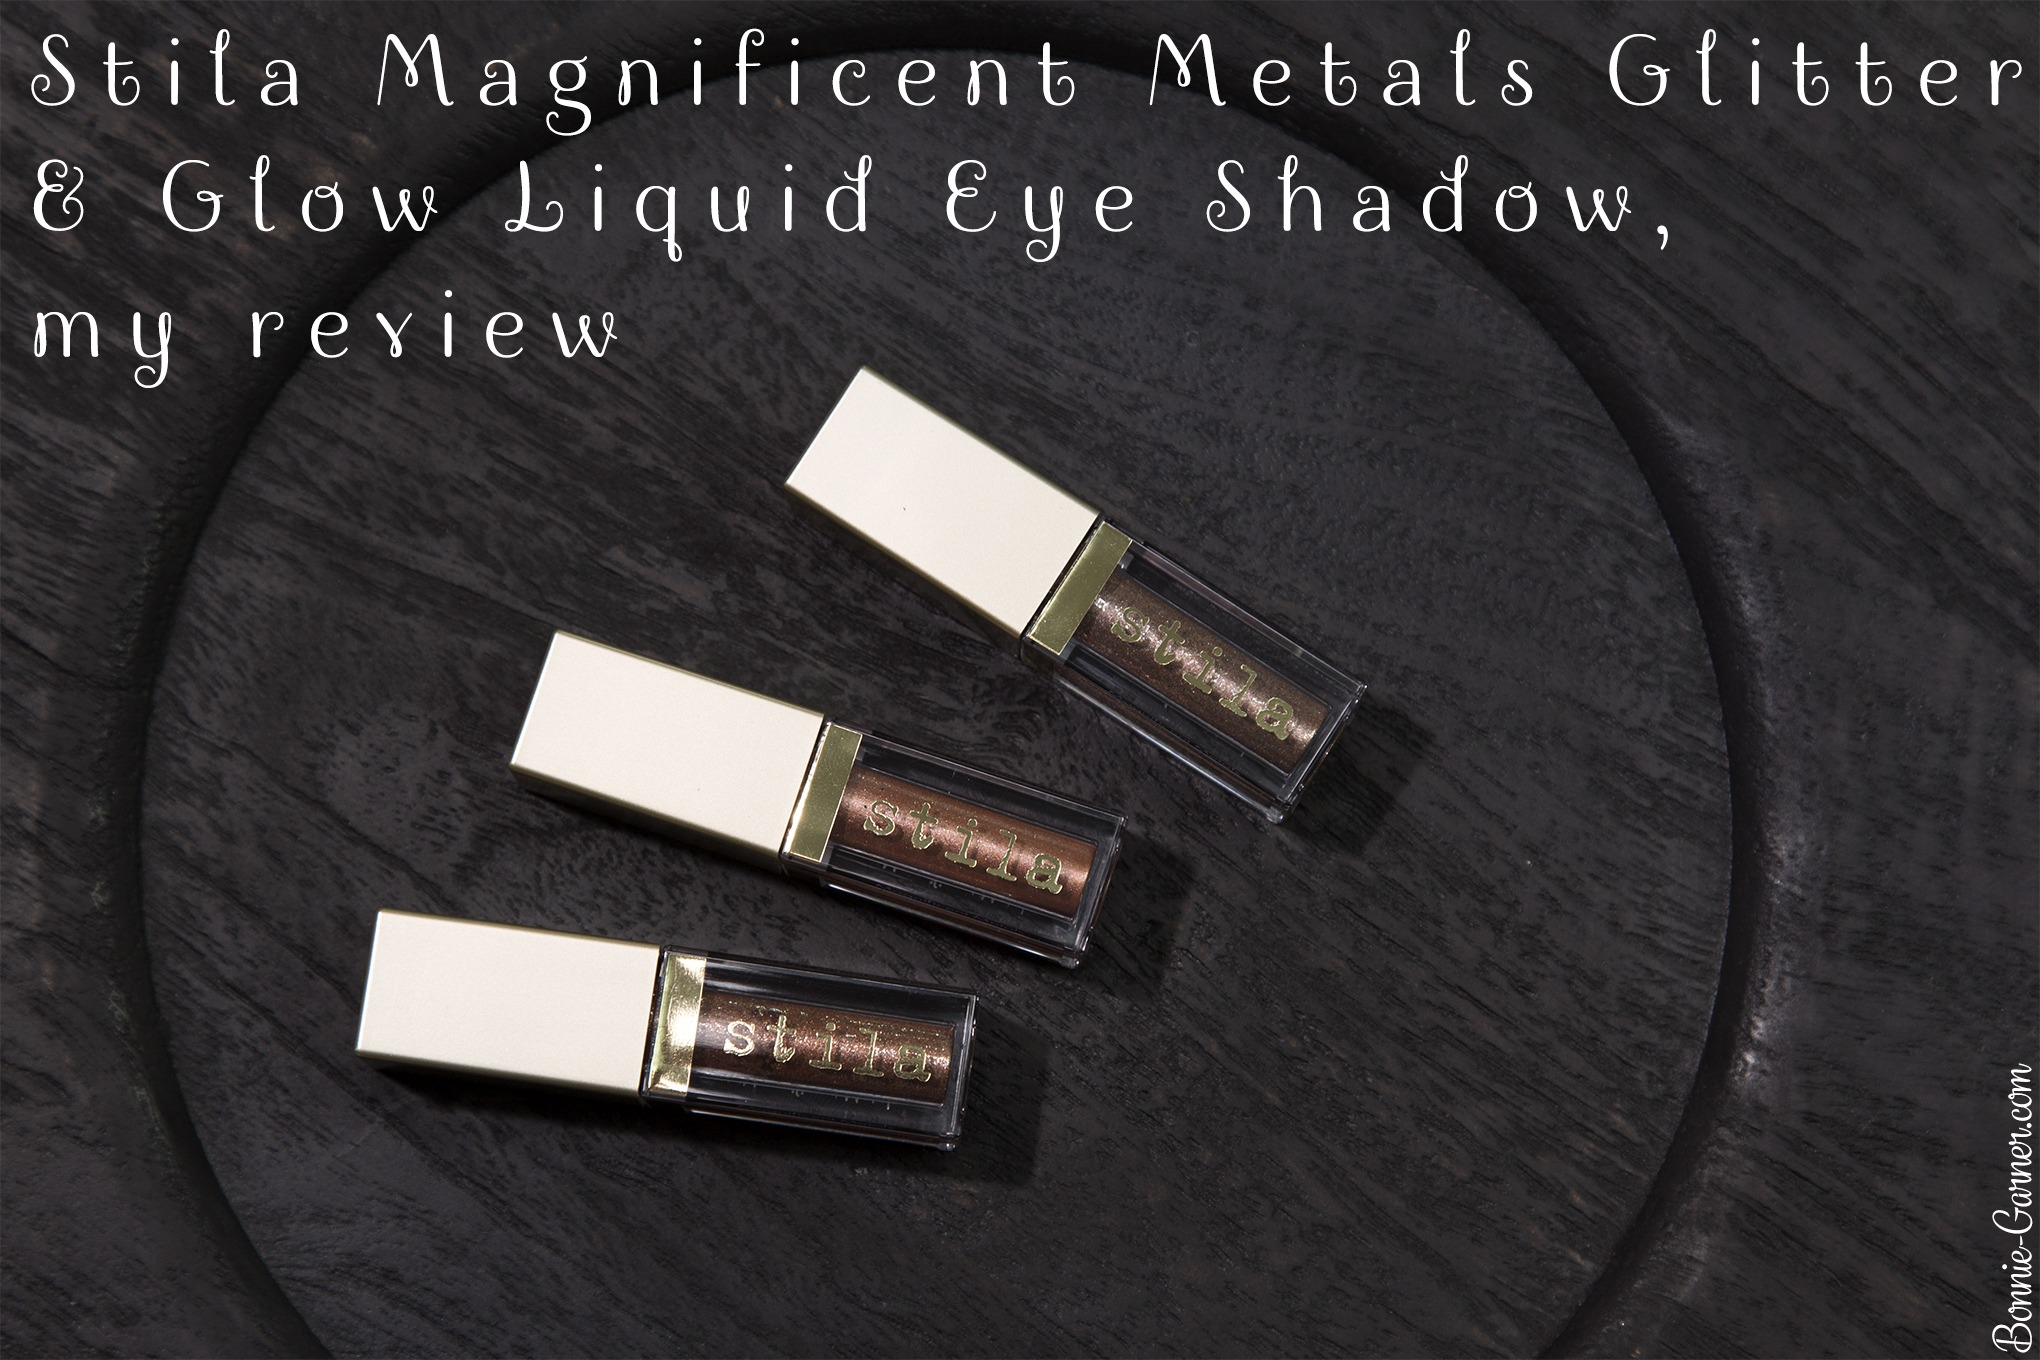 Stila Magnificent Metals Glitter & Glow Liquid Eye Shadow, my review